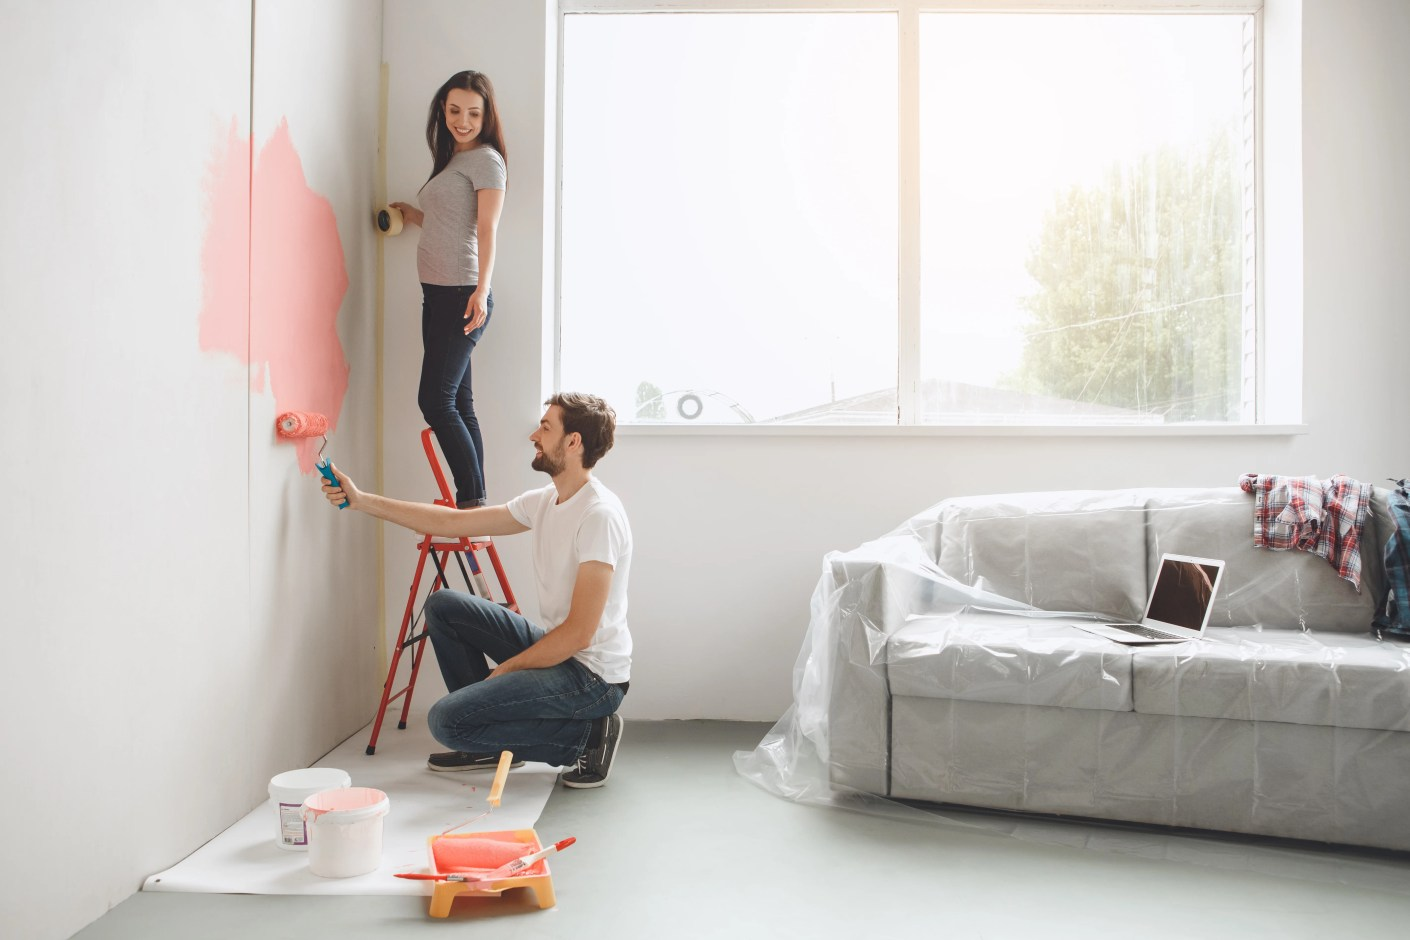 DIY projects are often less expensive than vacations and can be fun and rewarding.